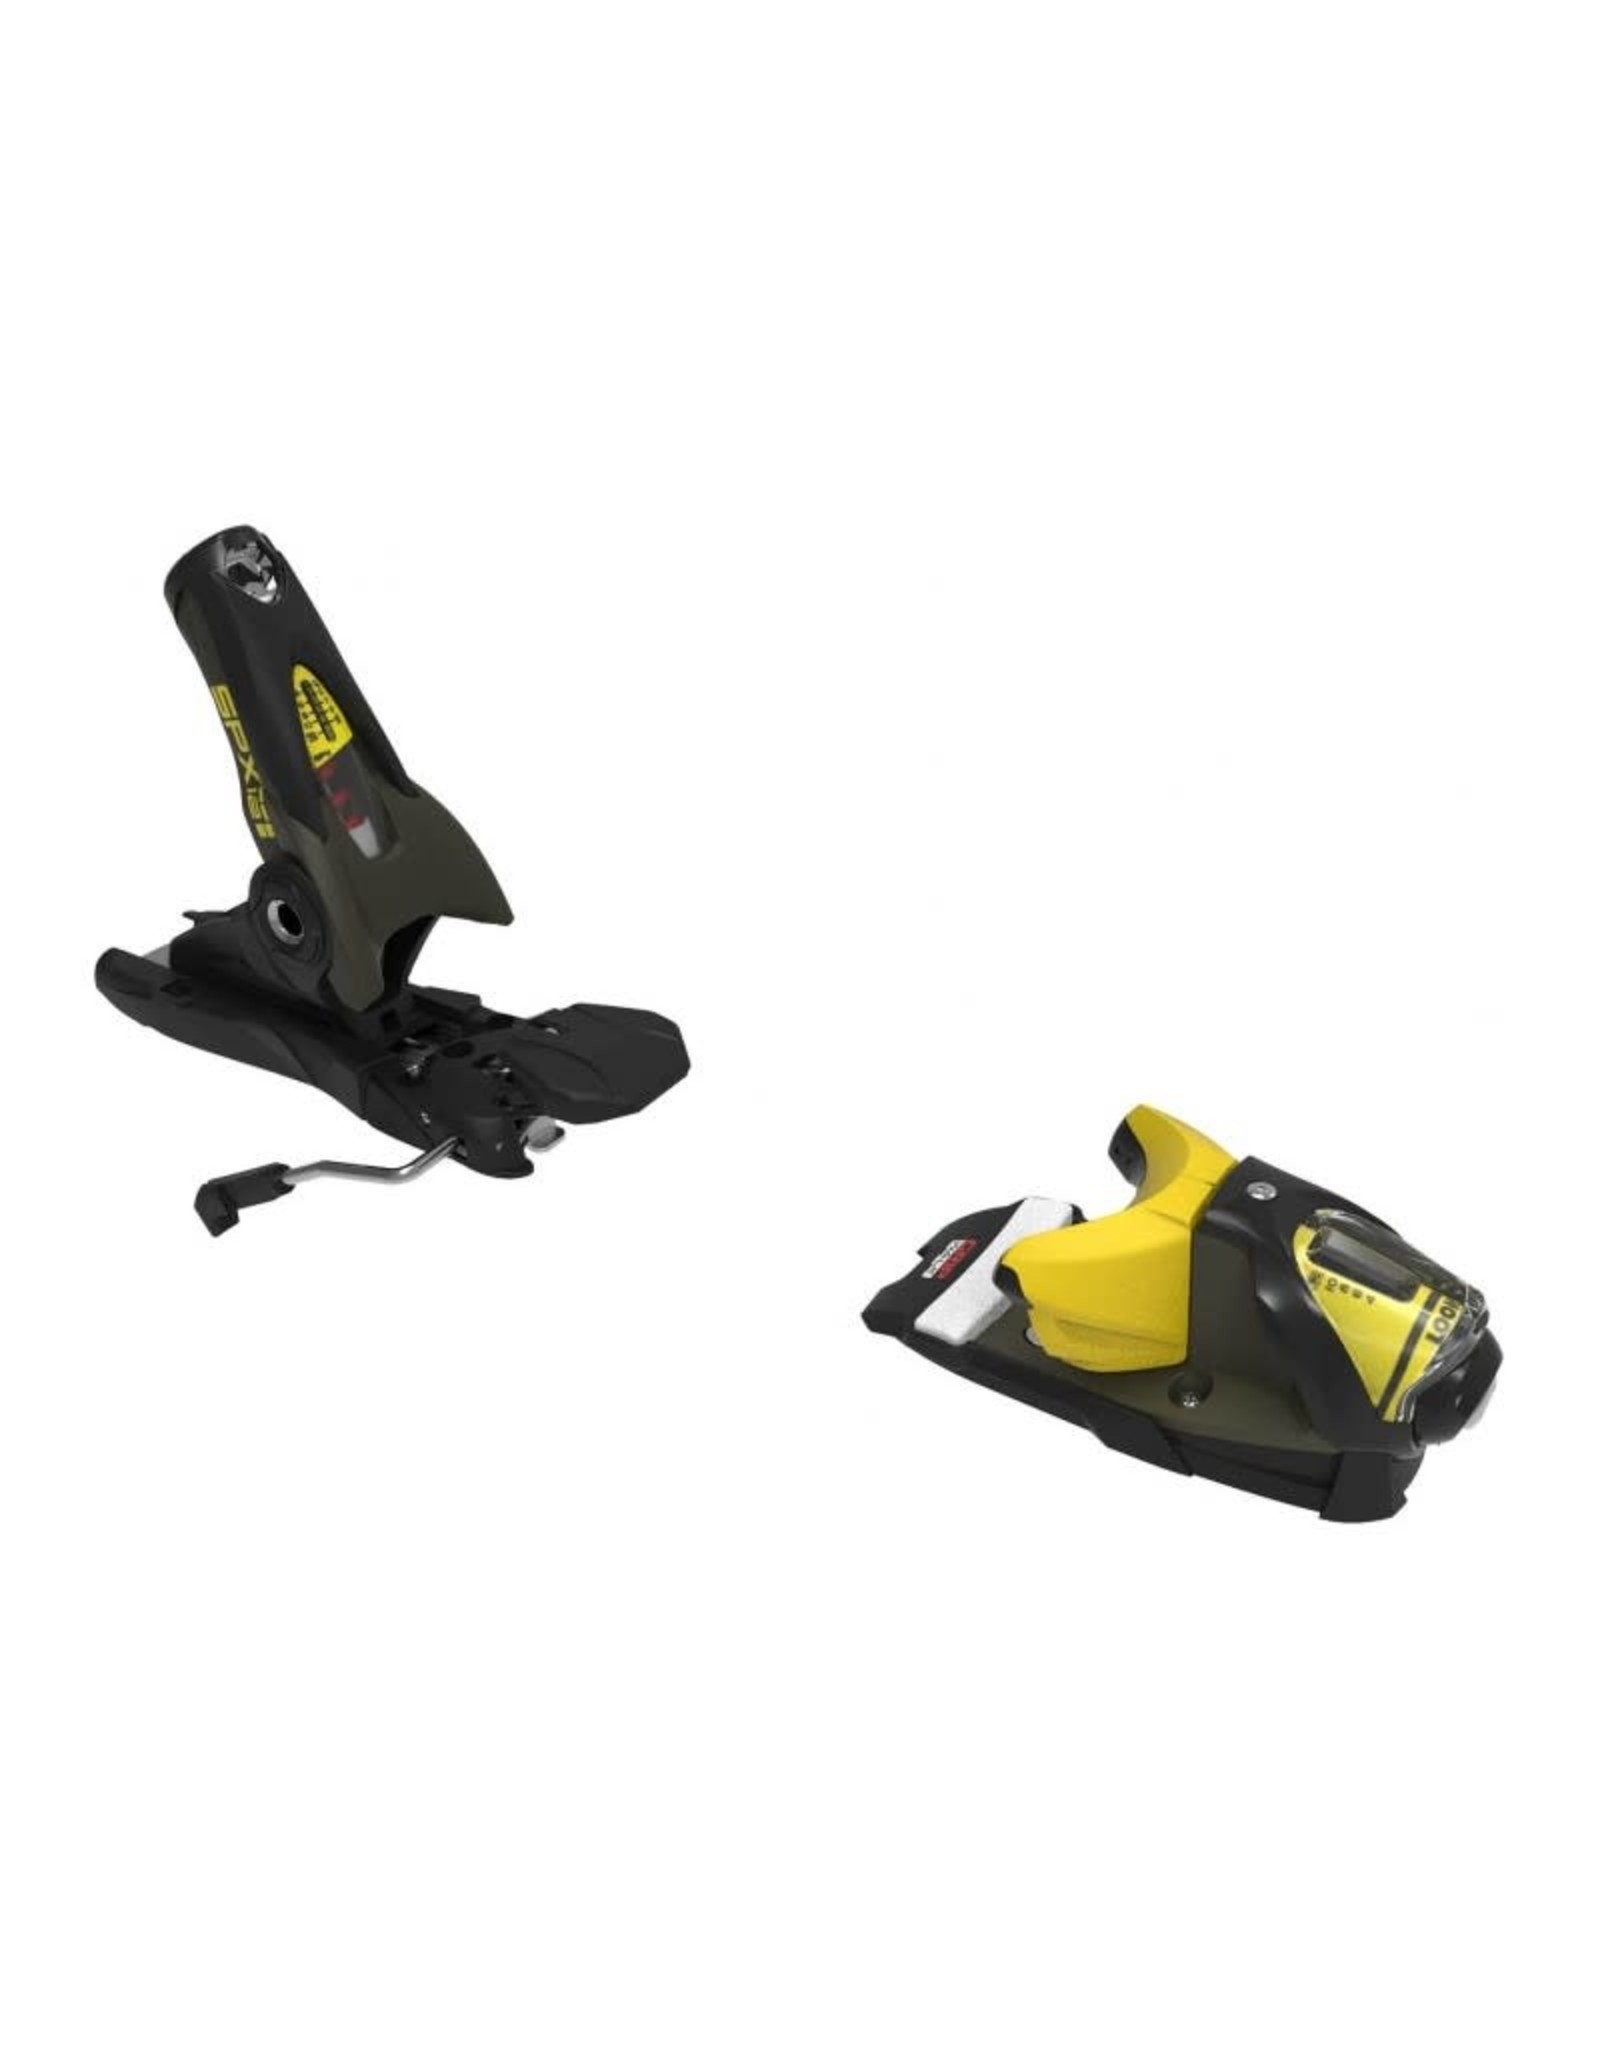 Look Adult Ski Binding SPX12 GW B90